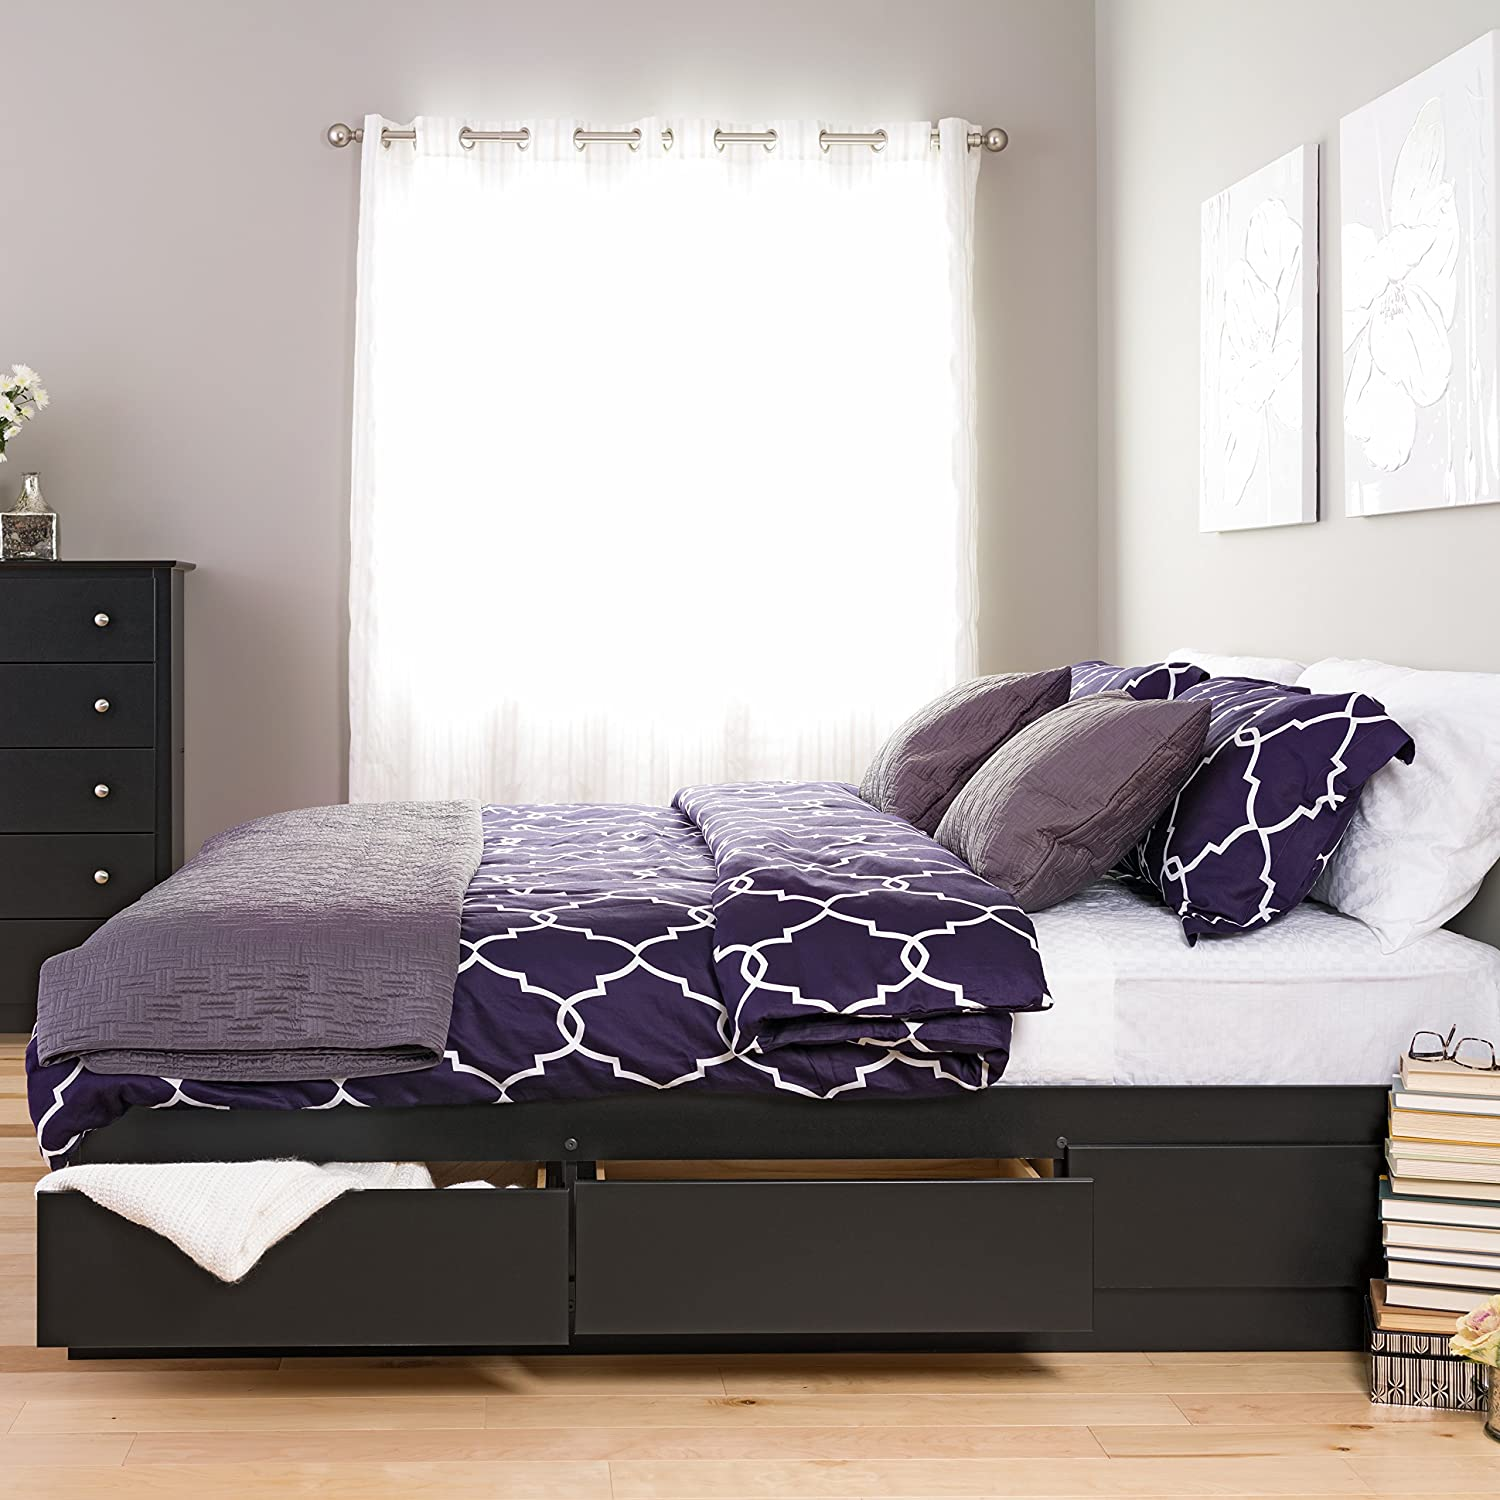 Details About King Size Bedframe Platform Bedroom Furniture Storage Bed 6 Drawers Wood Black